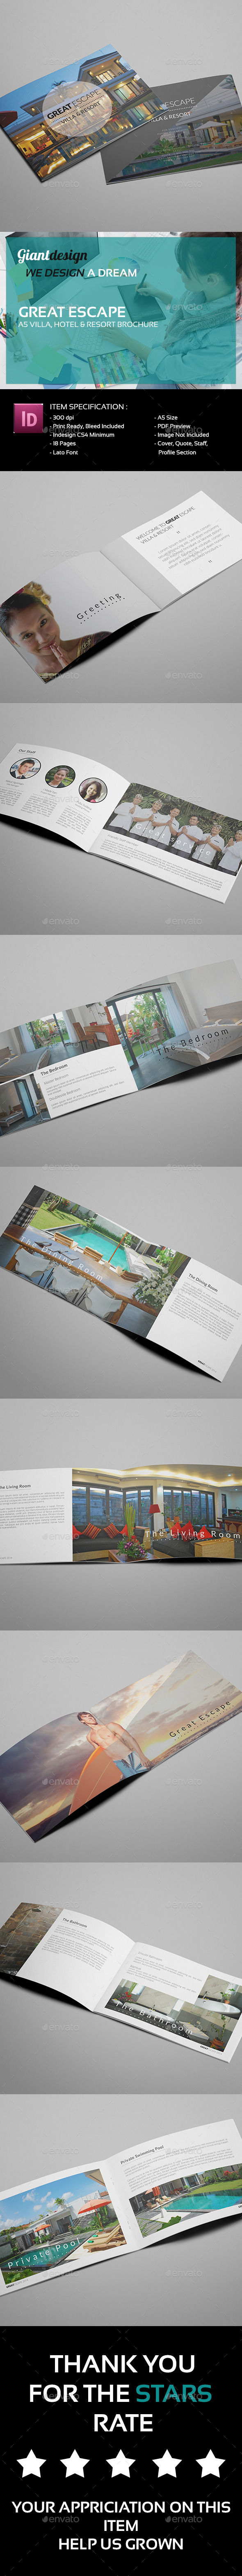 Great Escape A5 Villa Resort Brochure